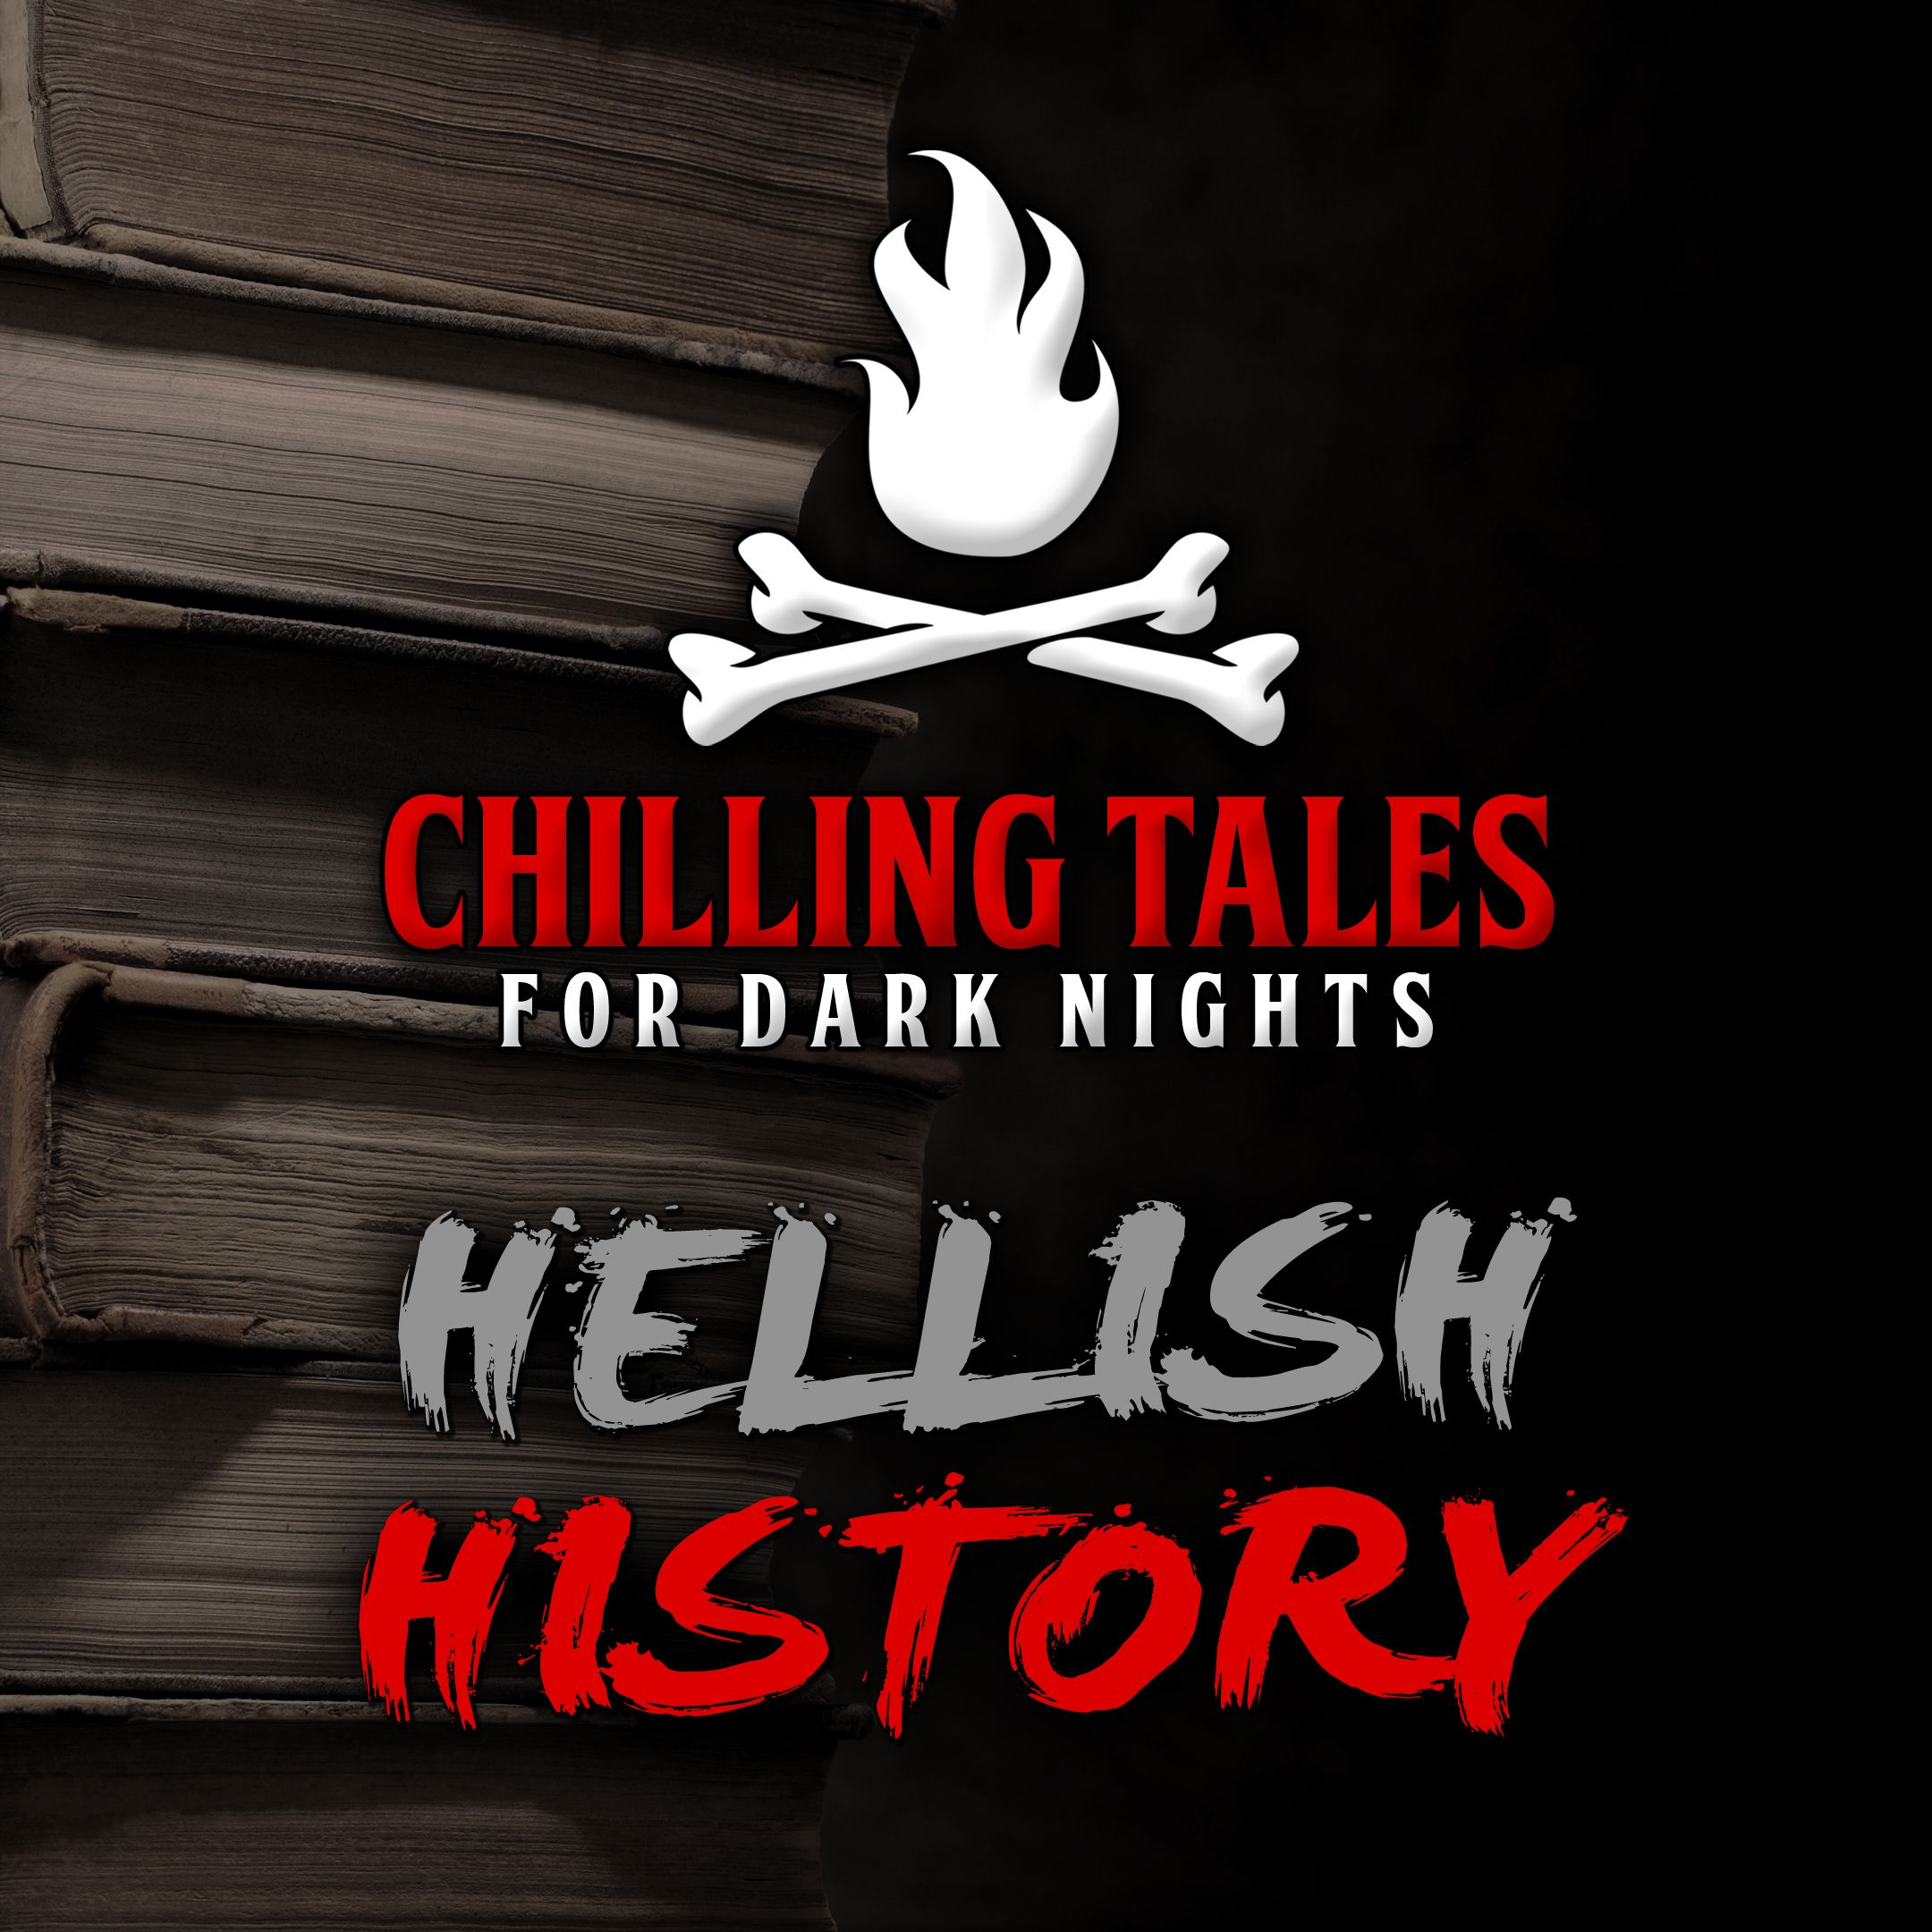 69: Hellish History – Chilling Tales for Dark Nights